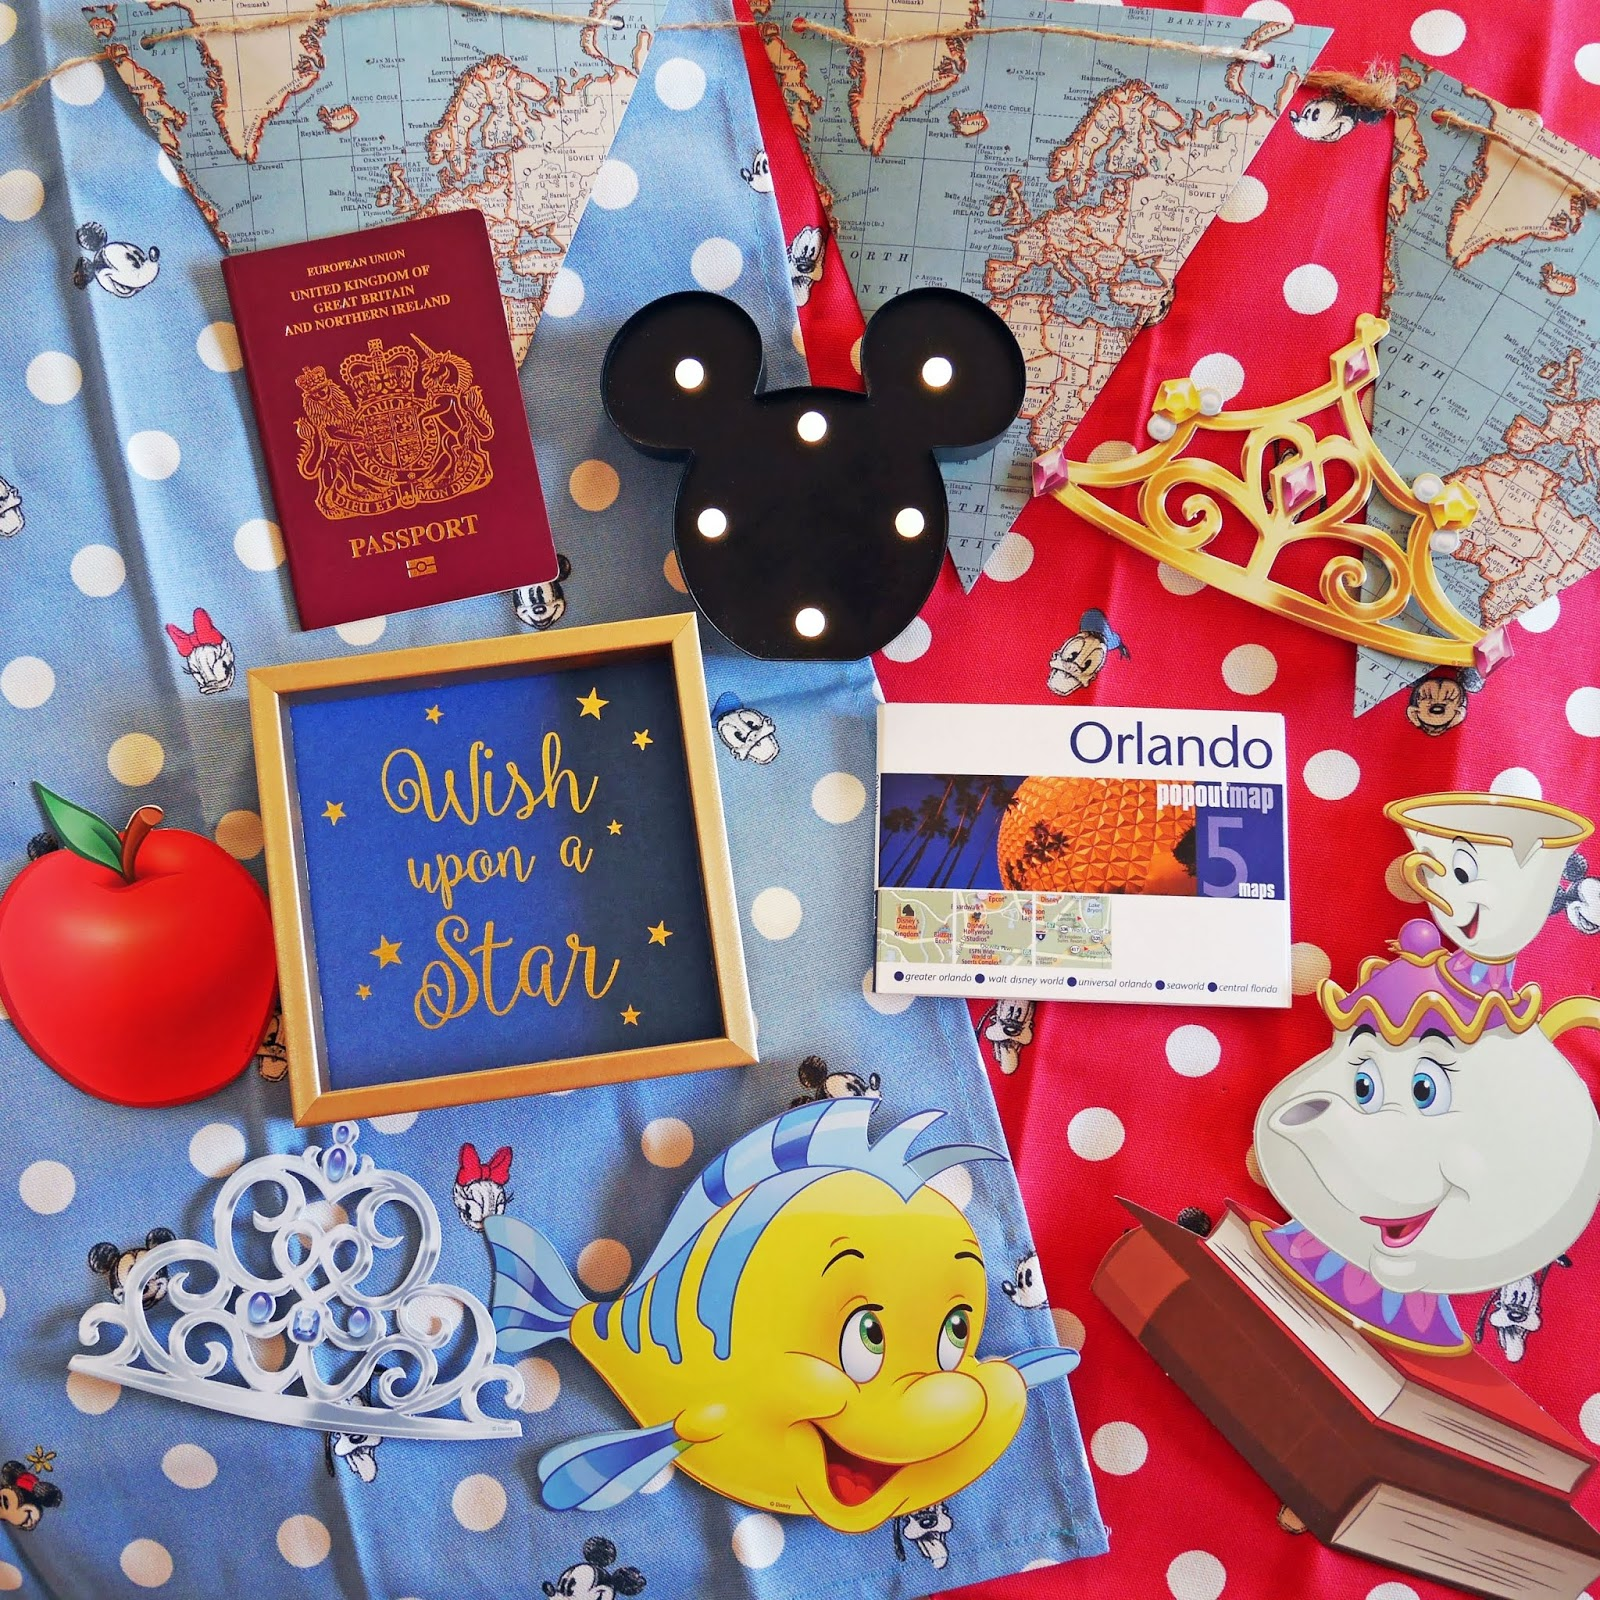 Planning a trip to Walt Disney World, Florida